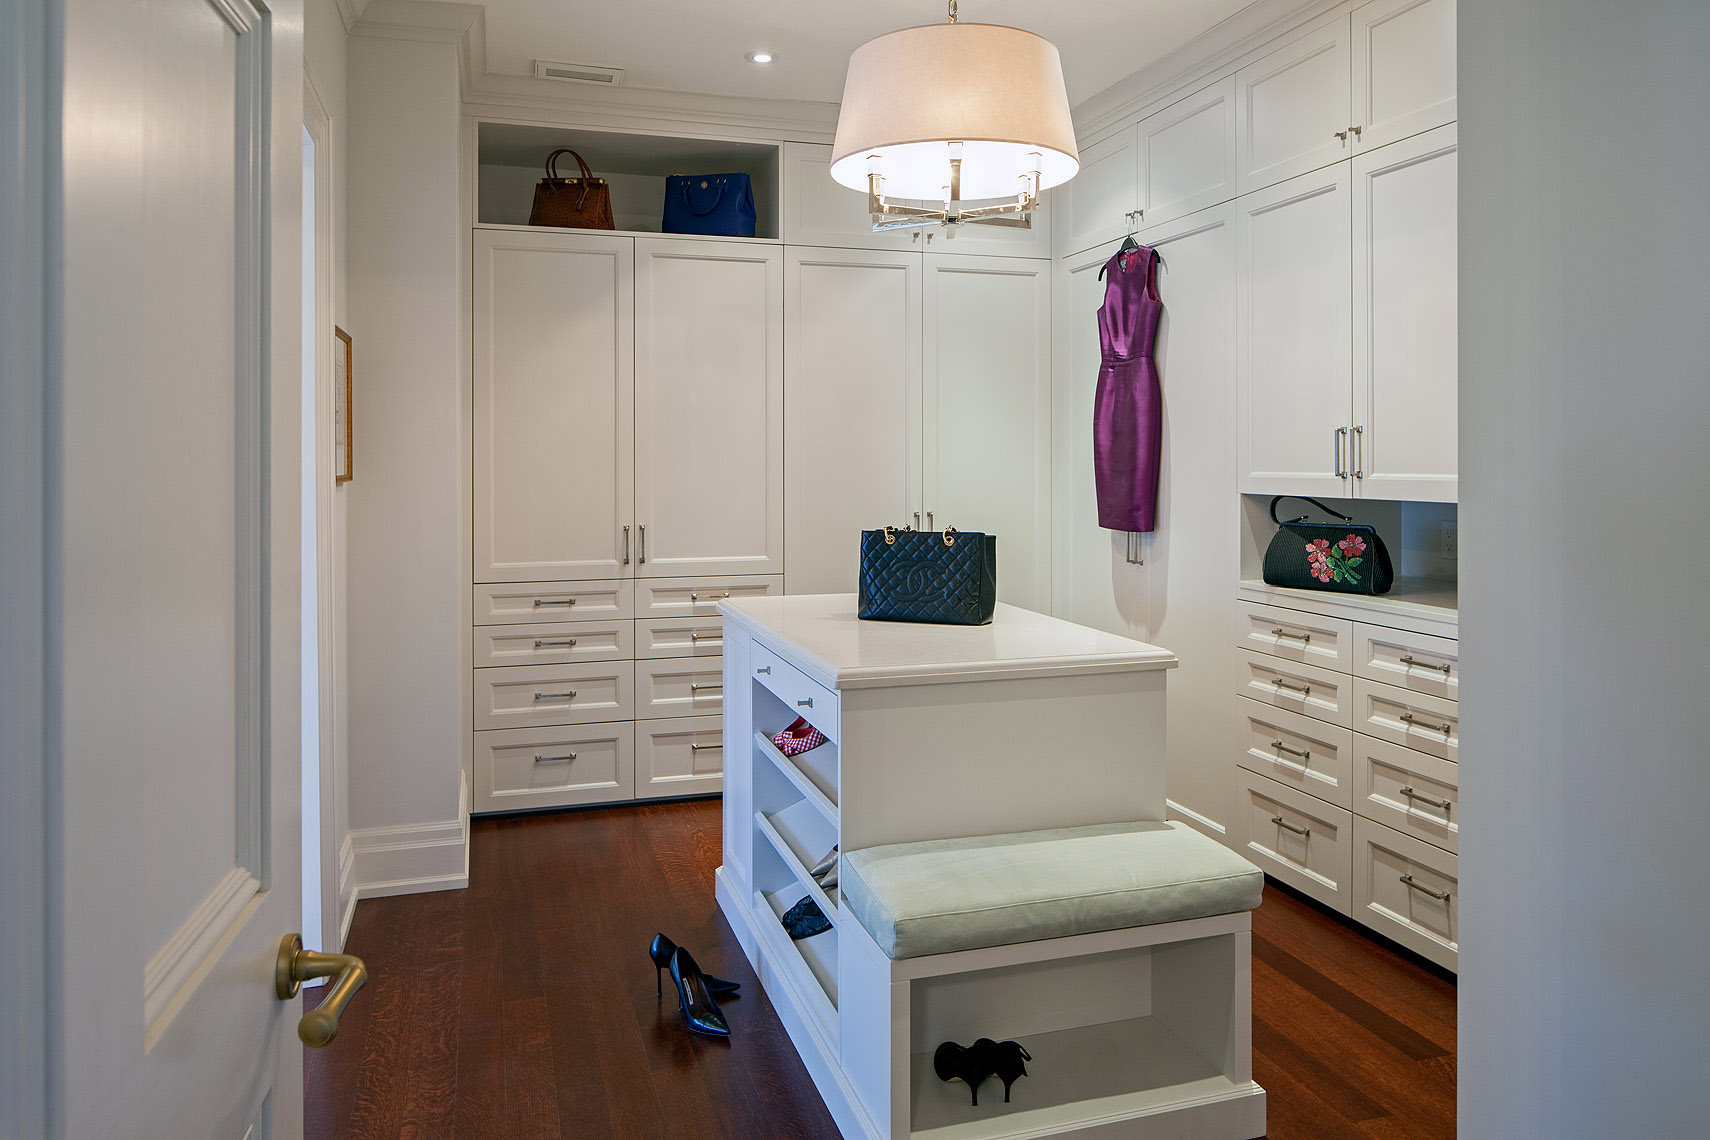 This dressing room and closet was painstakingly detailed to accommodate multi-level hanging, many drawers, shelving and open storage. Despite the extensive cabinetry, this passageway between the master bedroom and ensuite is light, fresh and spacious.